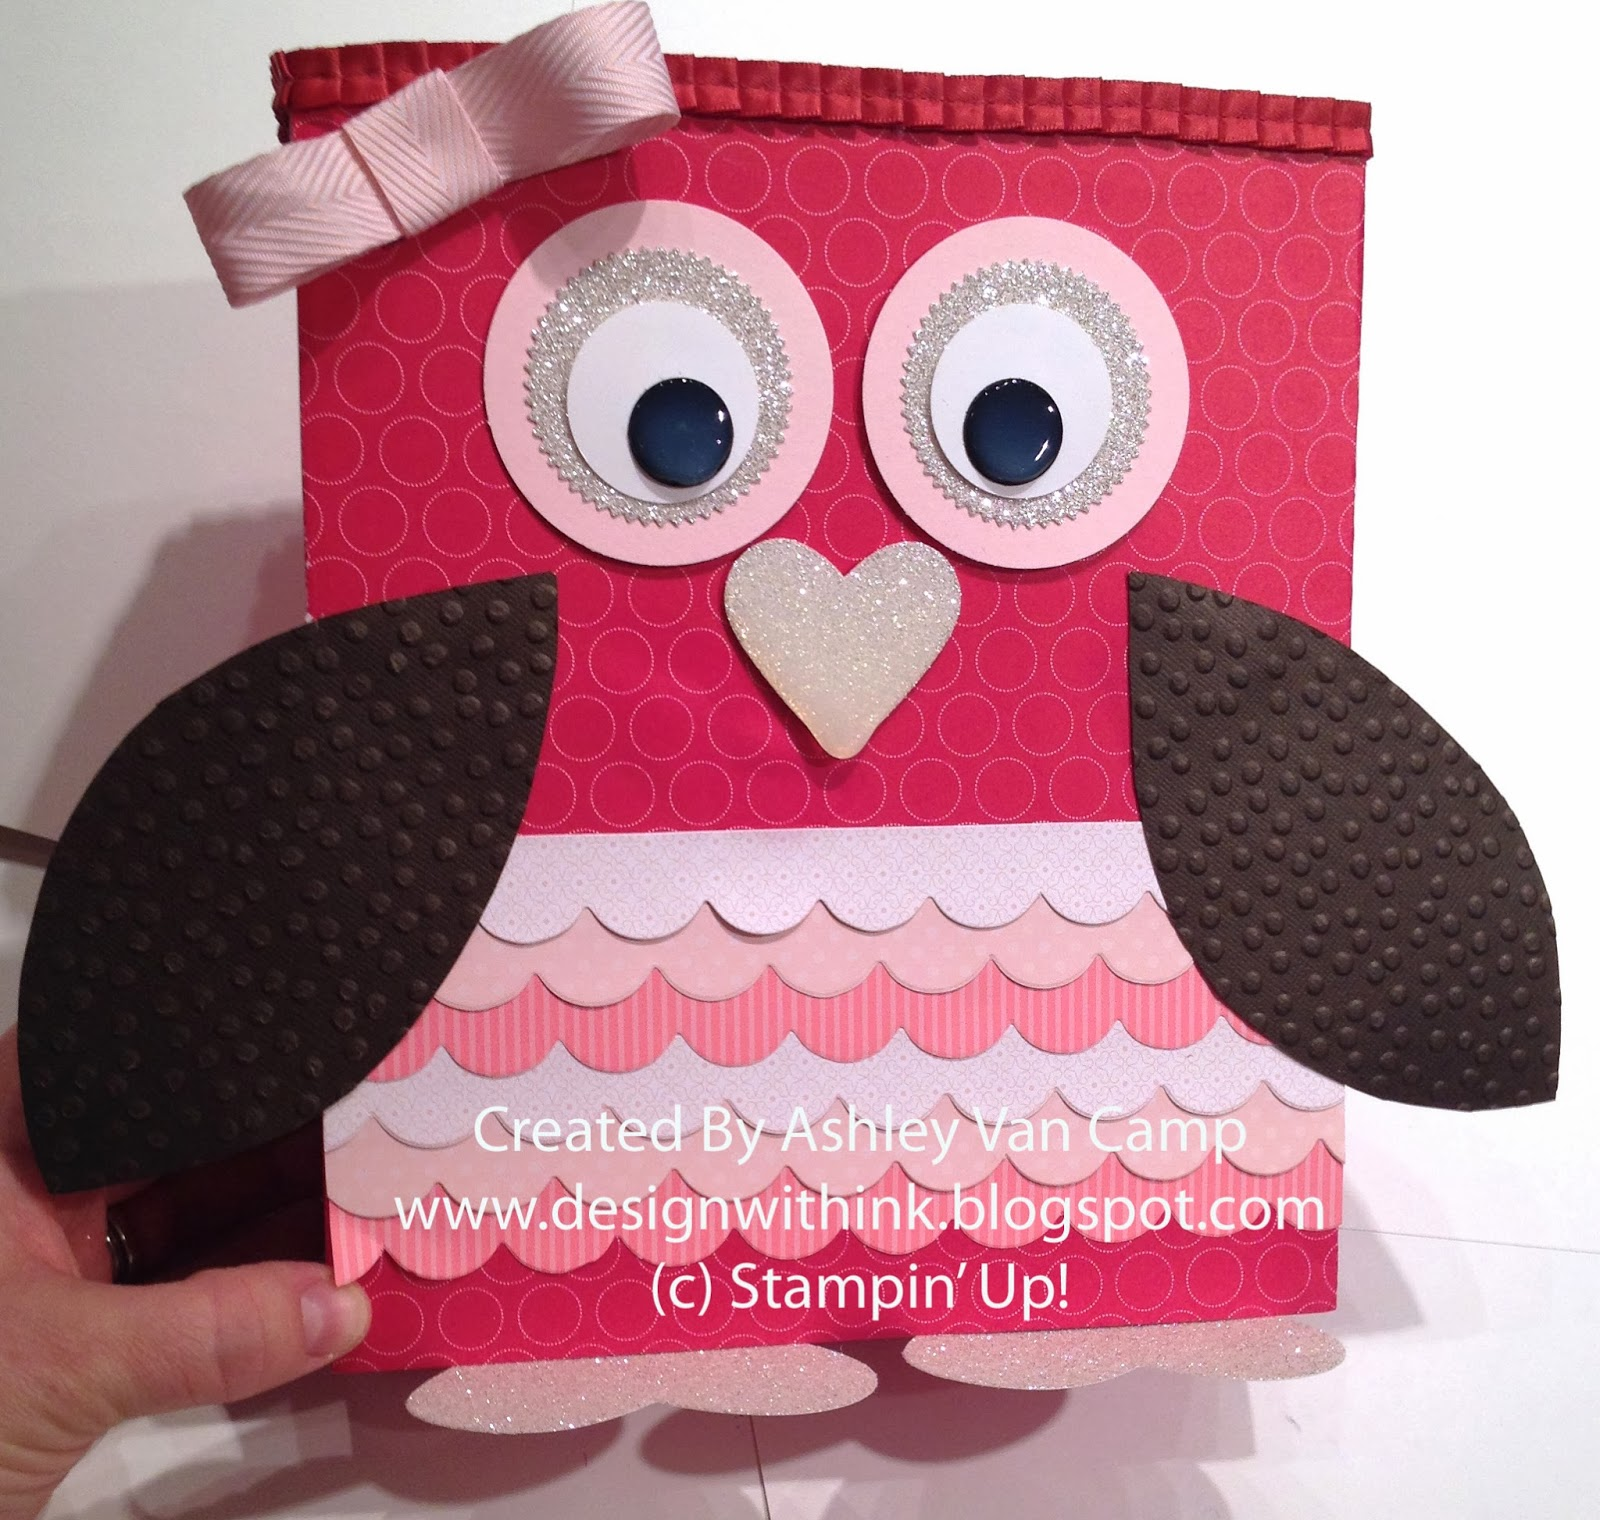 Ideas For Decorating Valentine Box: Design With Ink: Happy Valentine's Day! Classroom Style